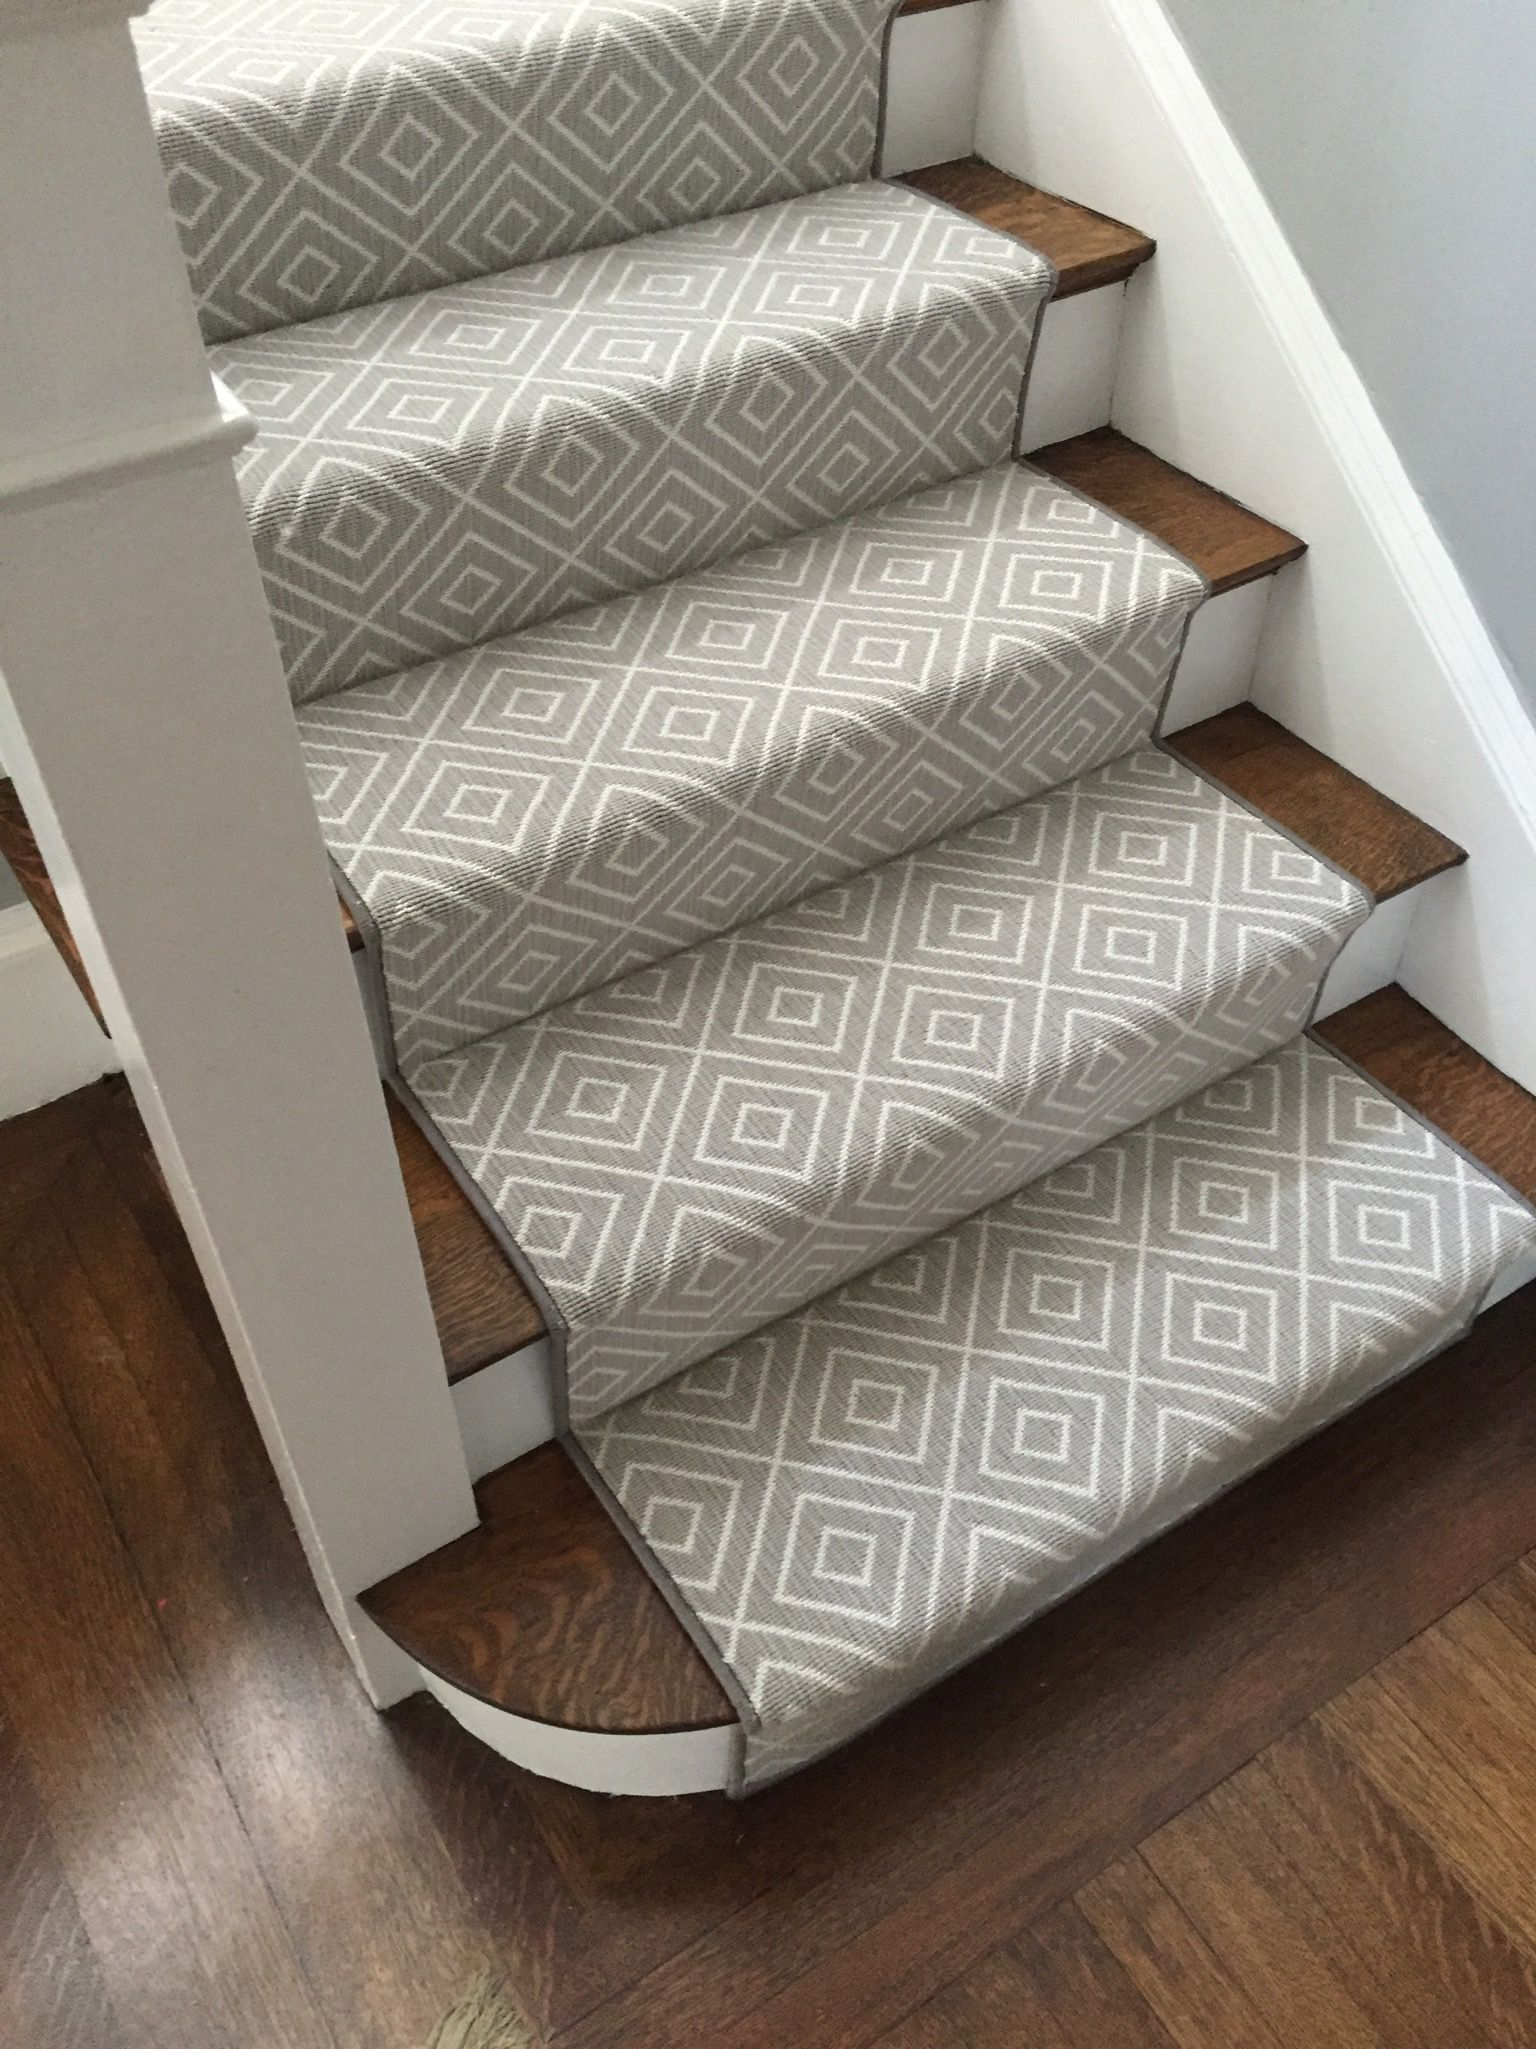 How to improve on your stair carpet